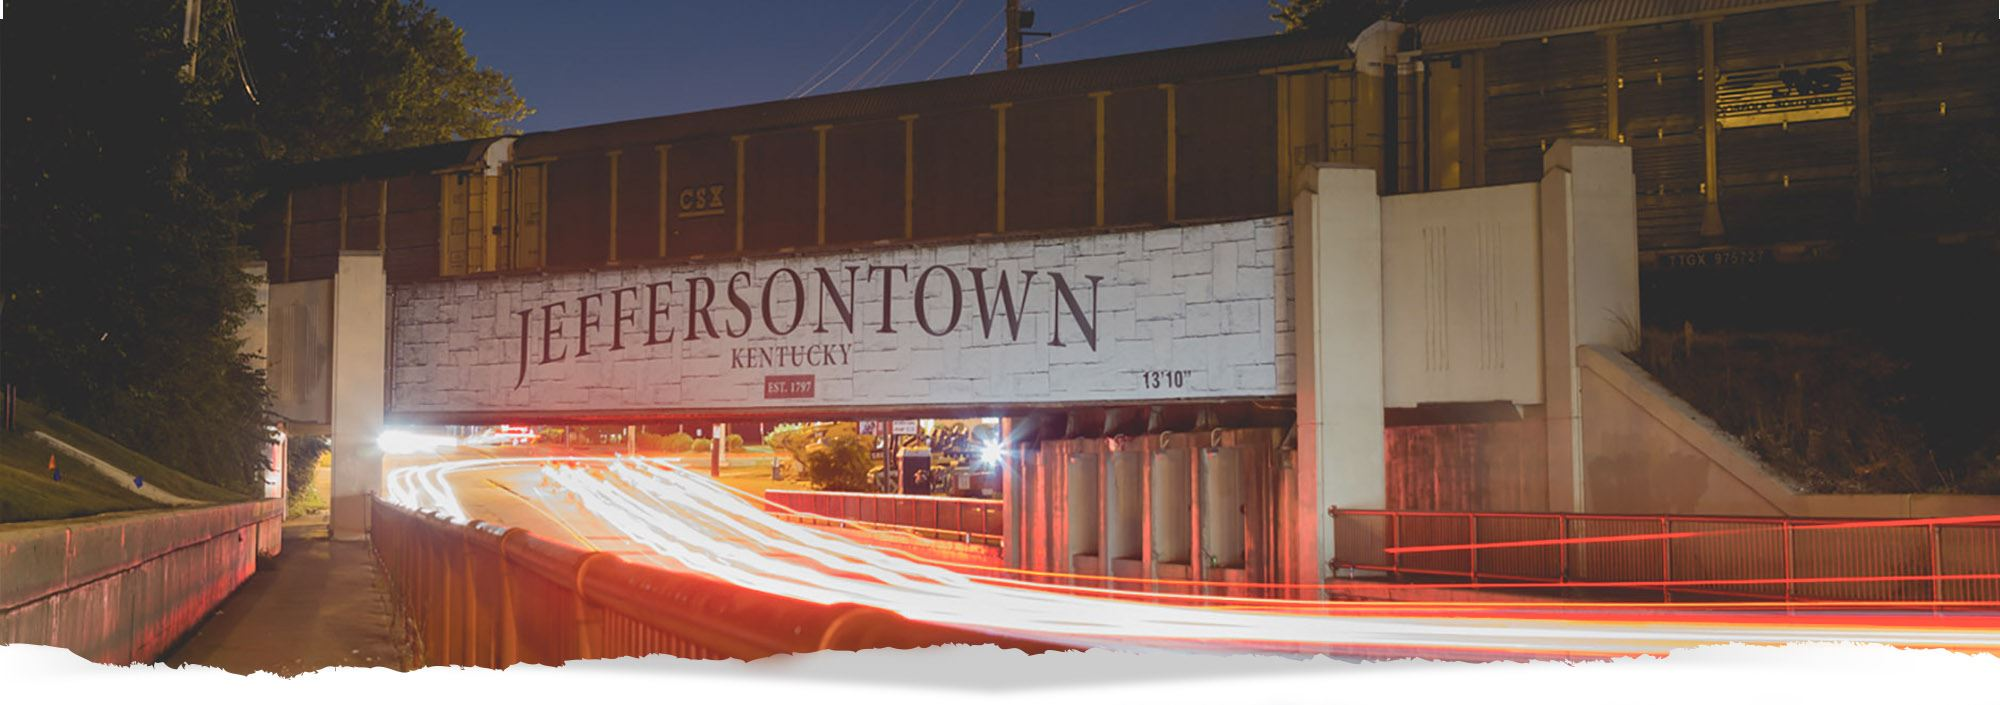 Image result for jeffersontown ky images